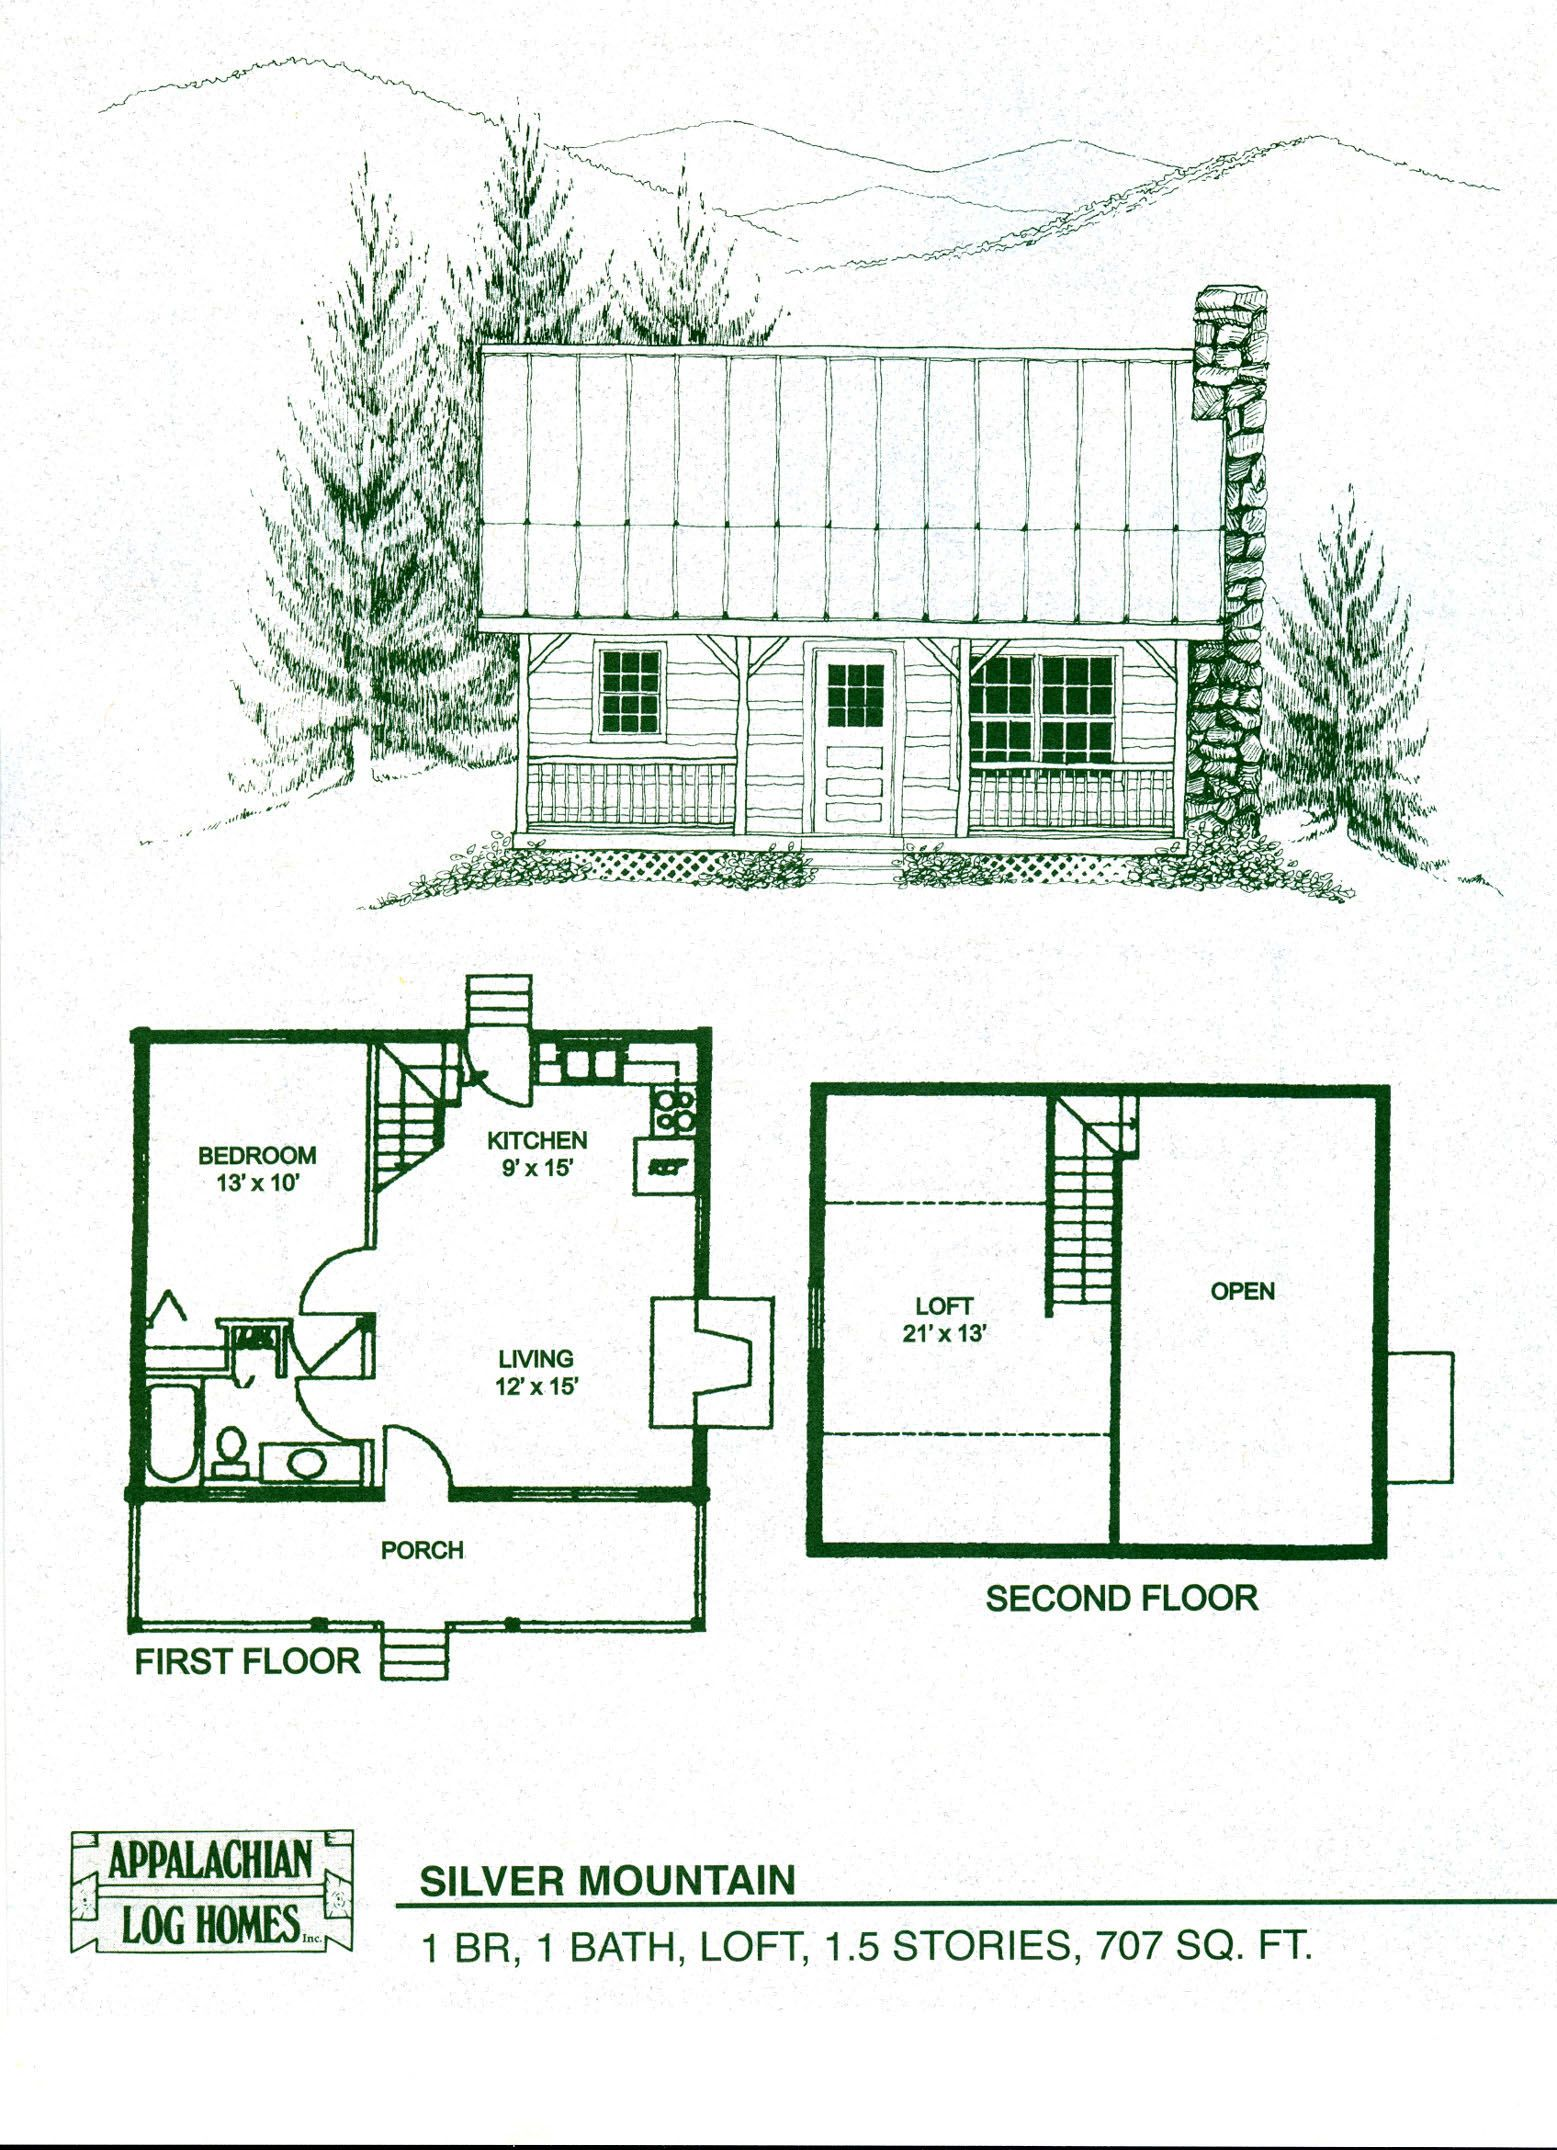 small cabin with loft floorplans | Photos of the Small ...